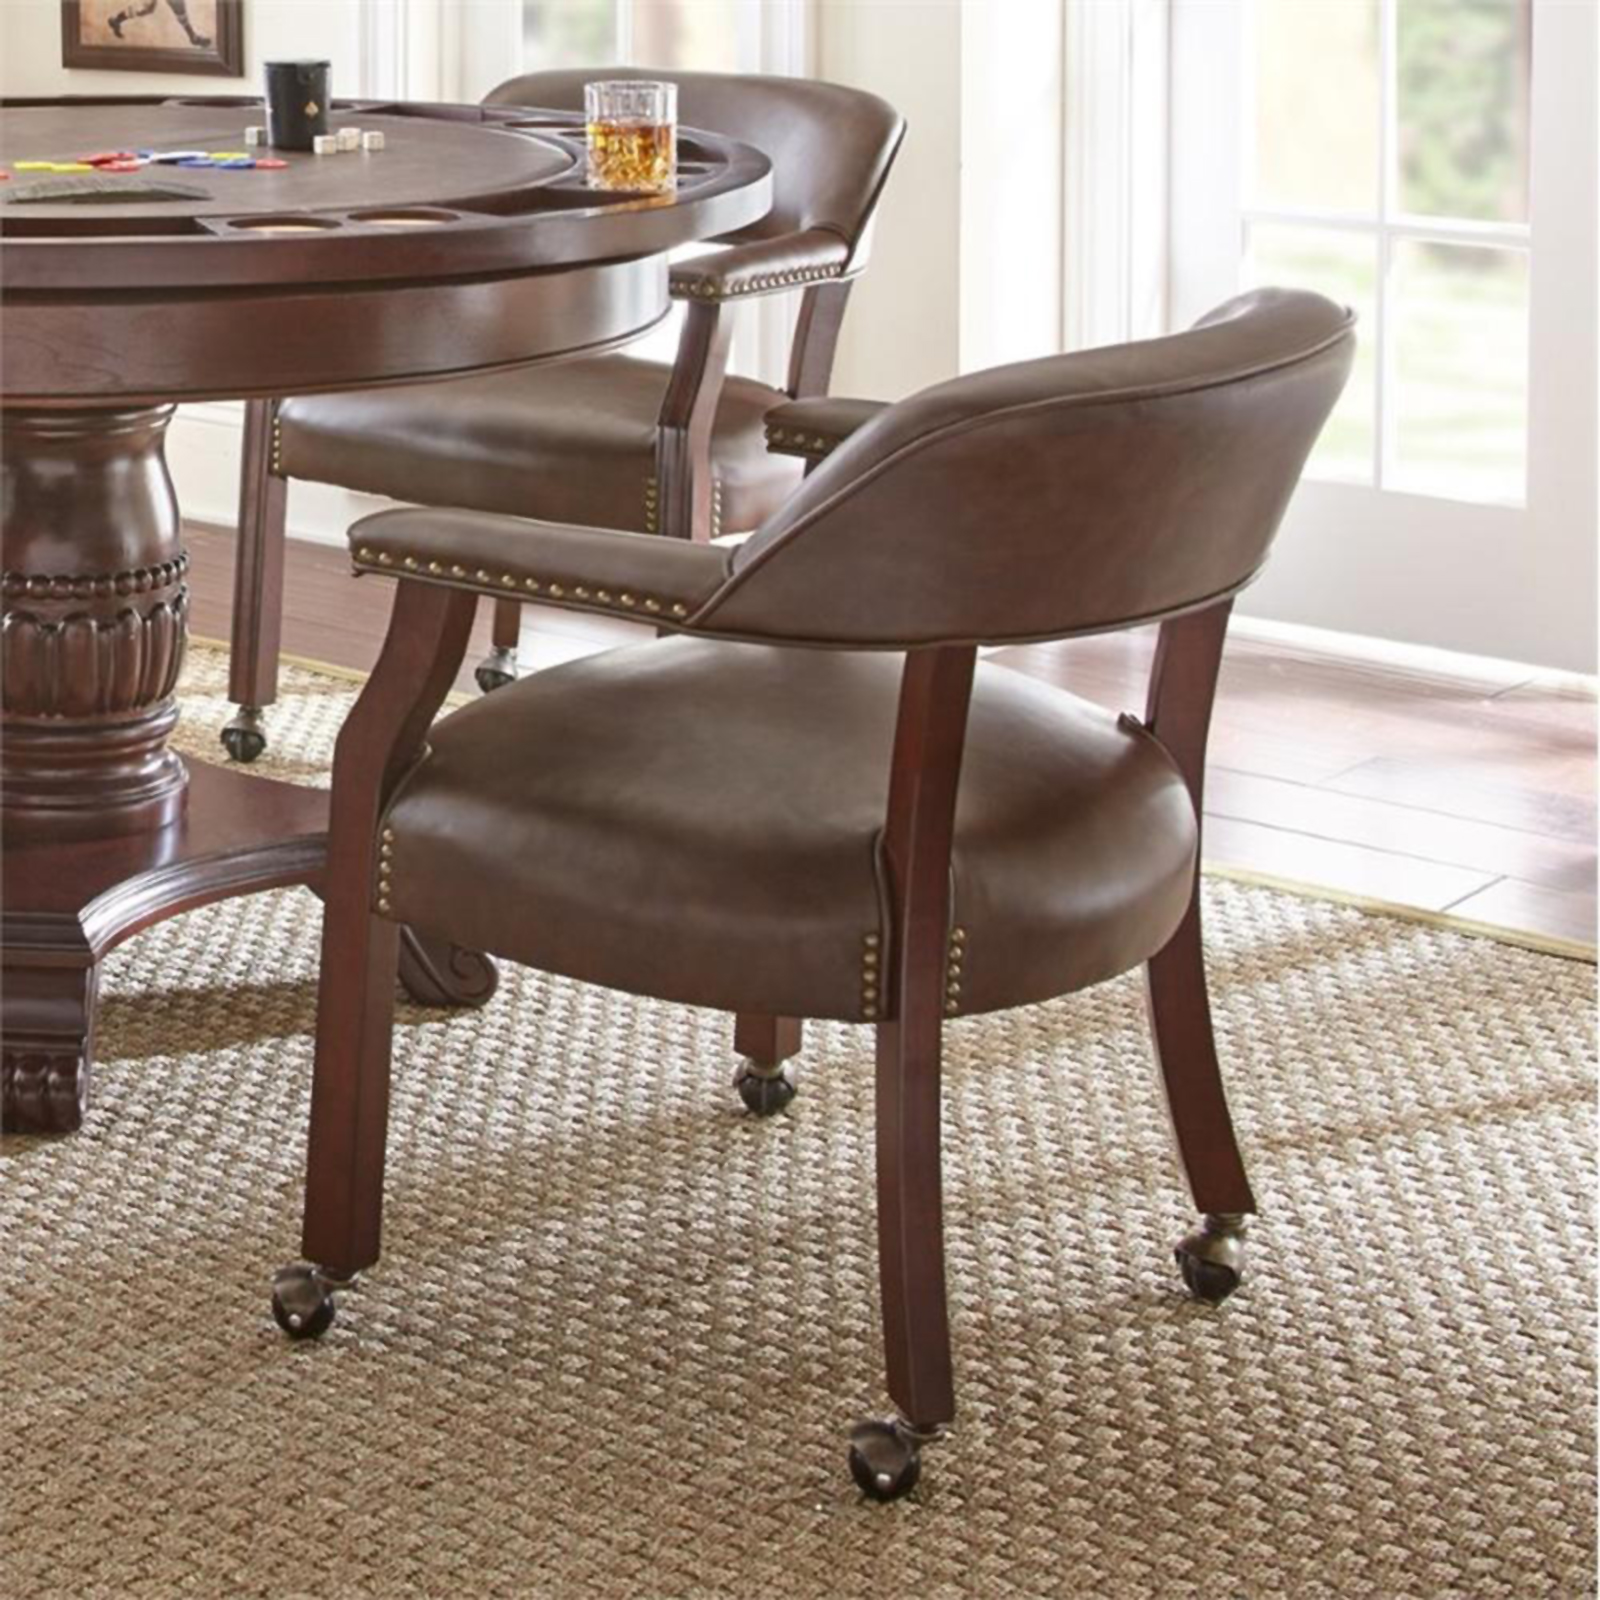 kitchen chairs aeron chair care and maintenance manual dining sears steve silver company tournament captains with casters brown